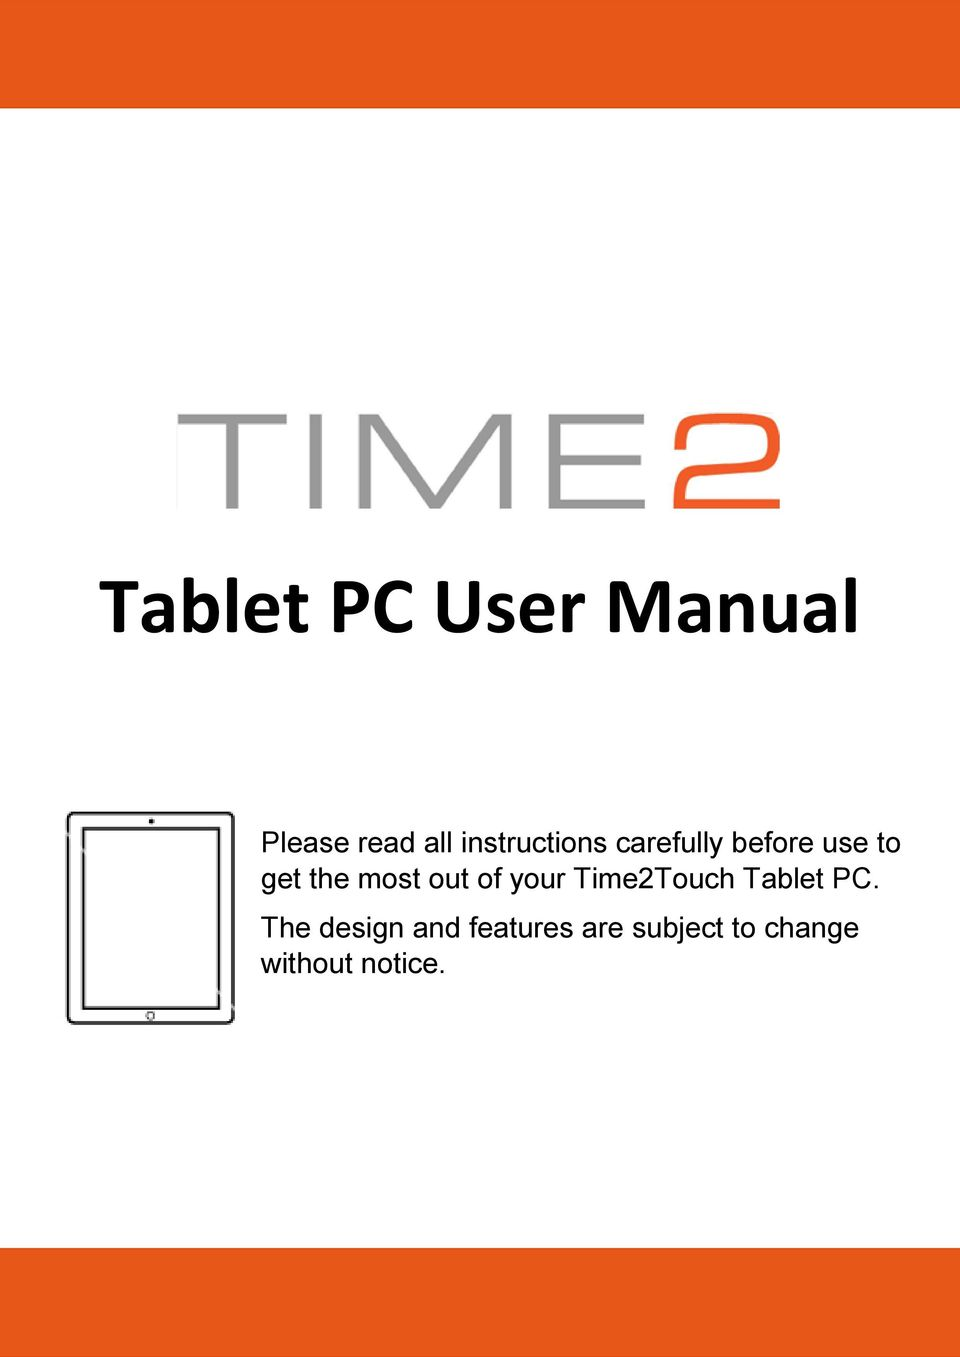 most out of your Time2Touch Tablet PC.